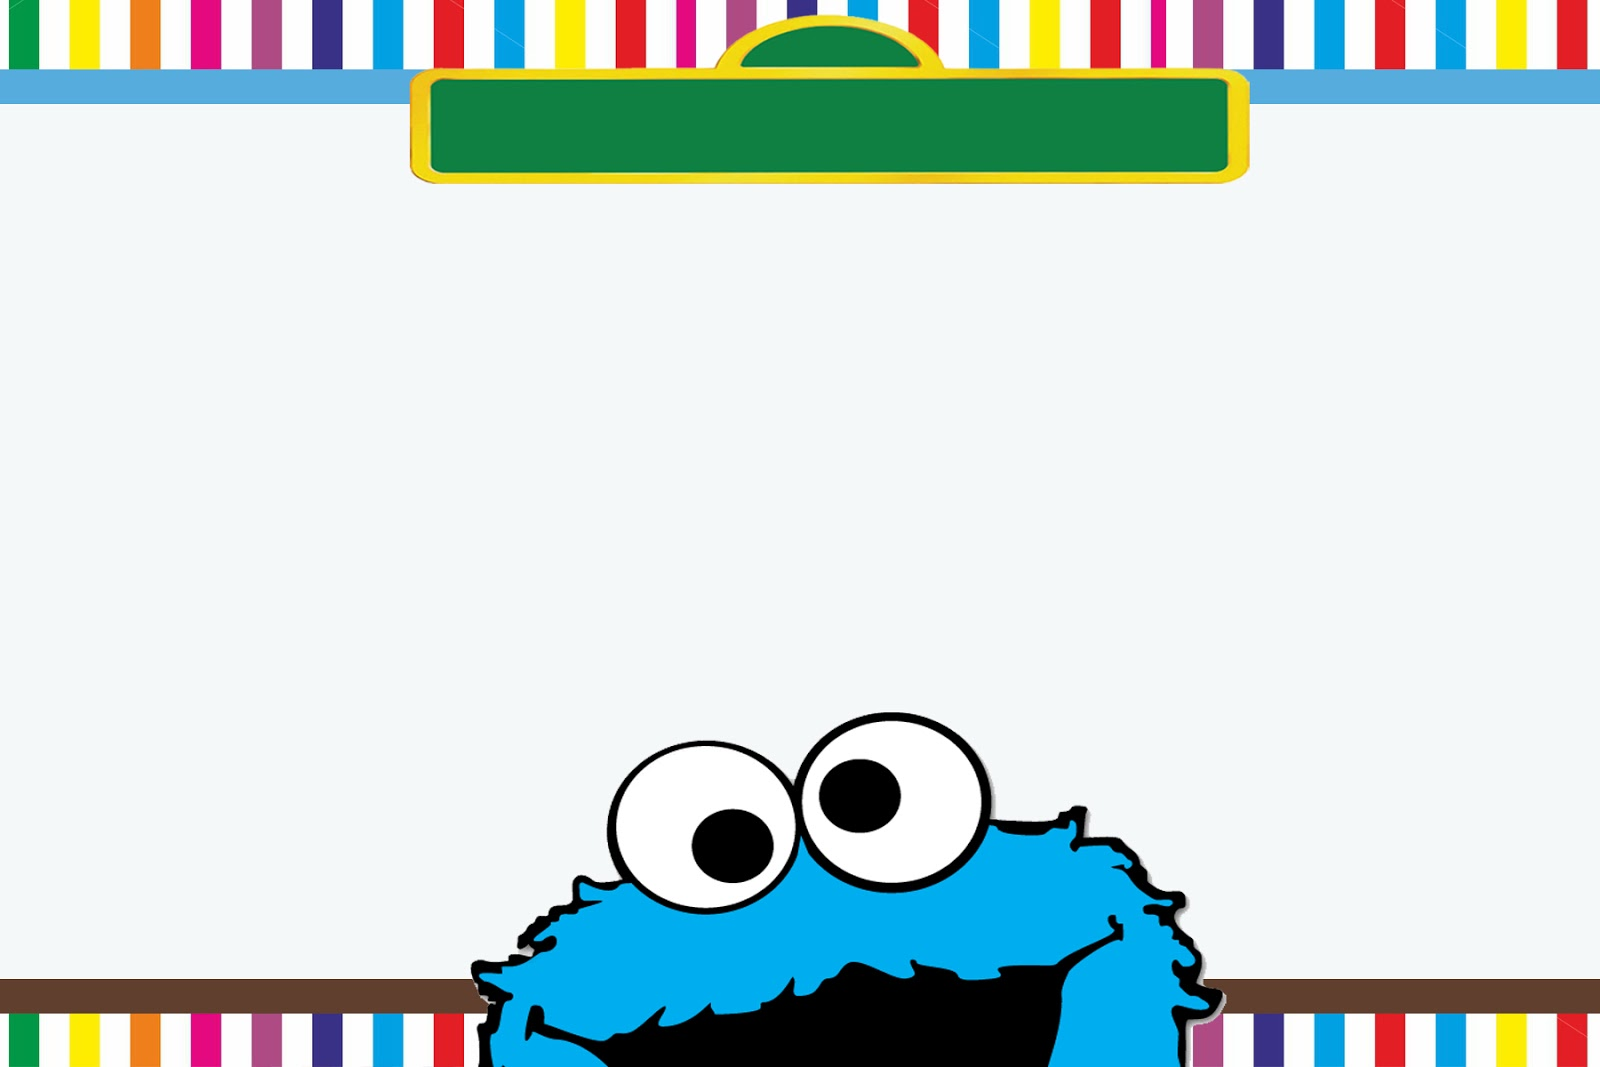 moster templates - moms kiddie party link freebie sesame street elmo and